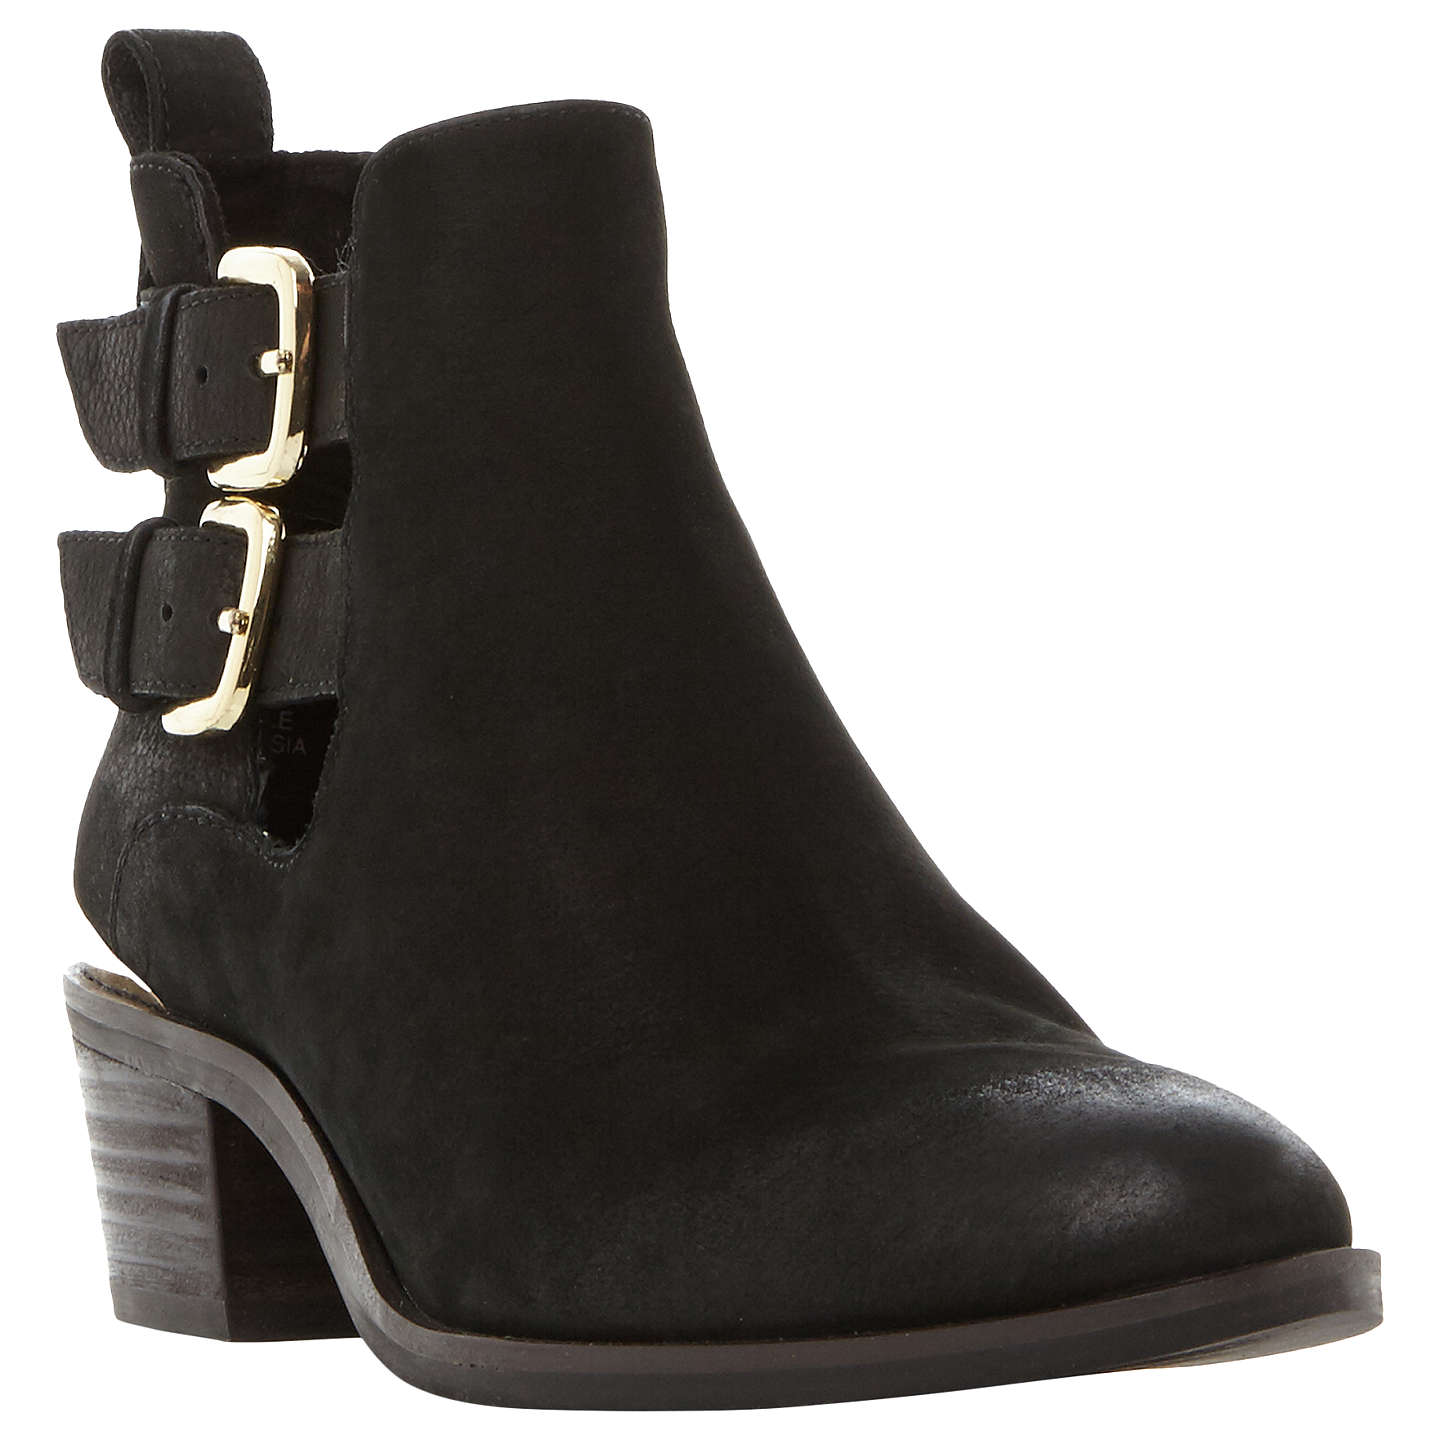 BuySteve Madden Picos Cut Out Ankle Boots, Black, 3 Online at johnlewis.com  ...